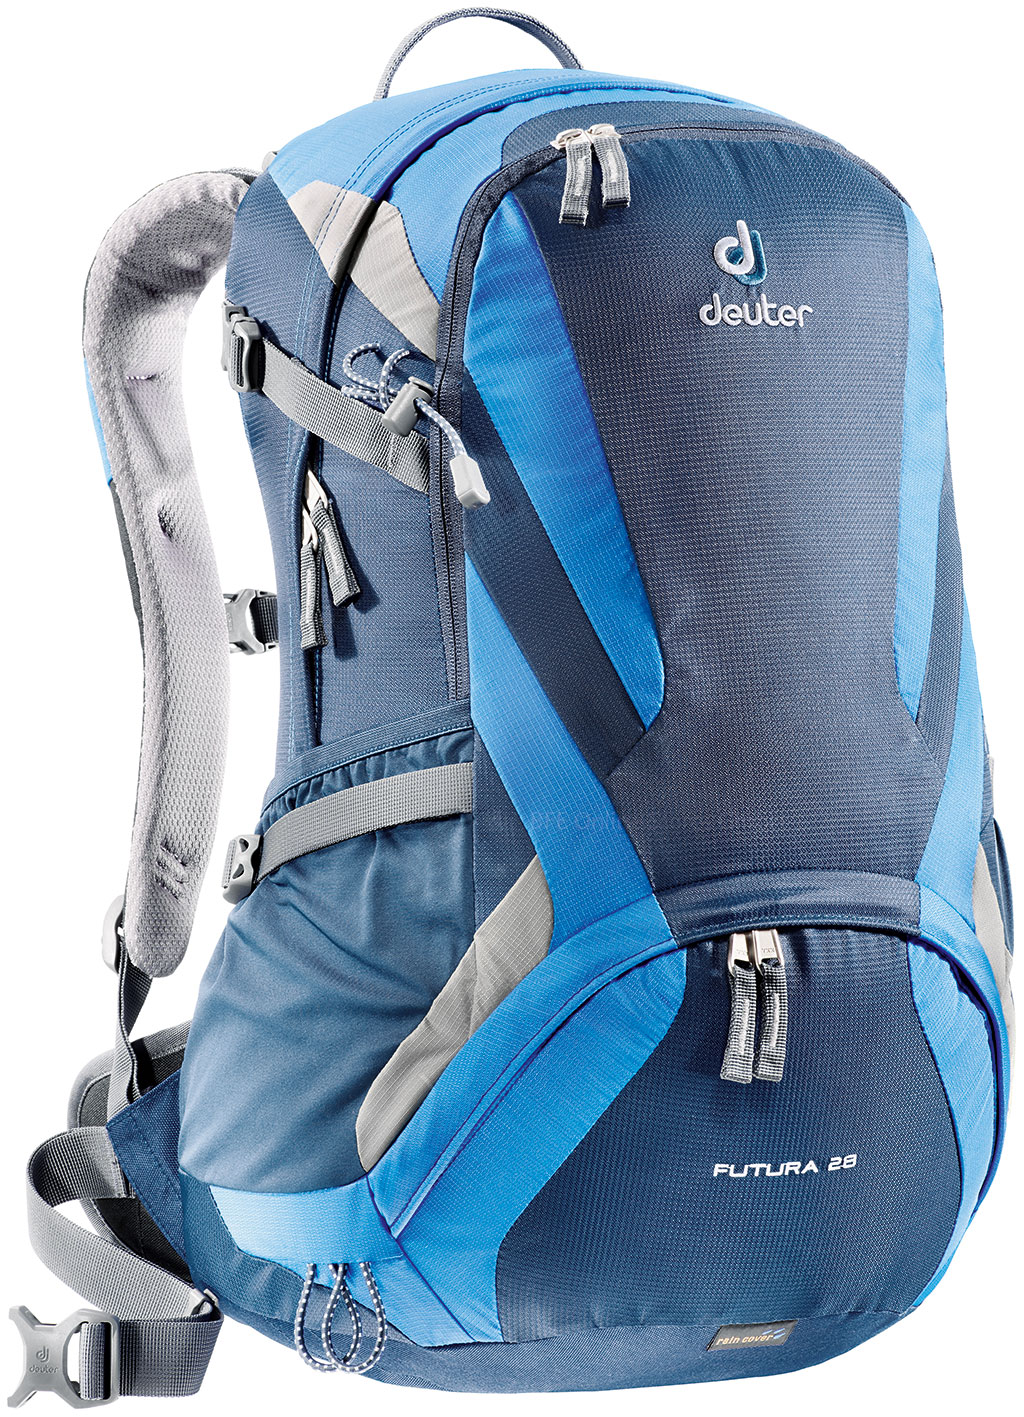 Deuter Futura 28 midnight-coolblue-30